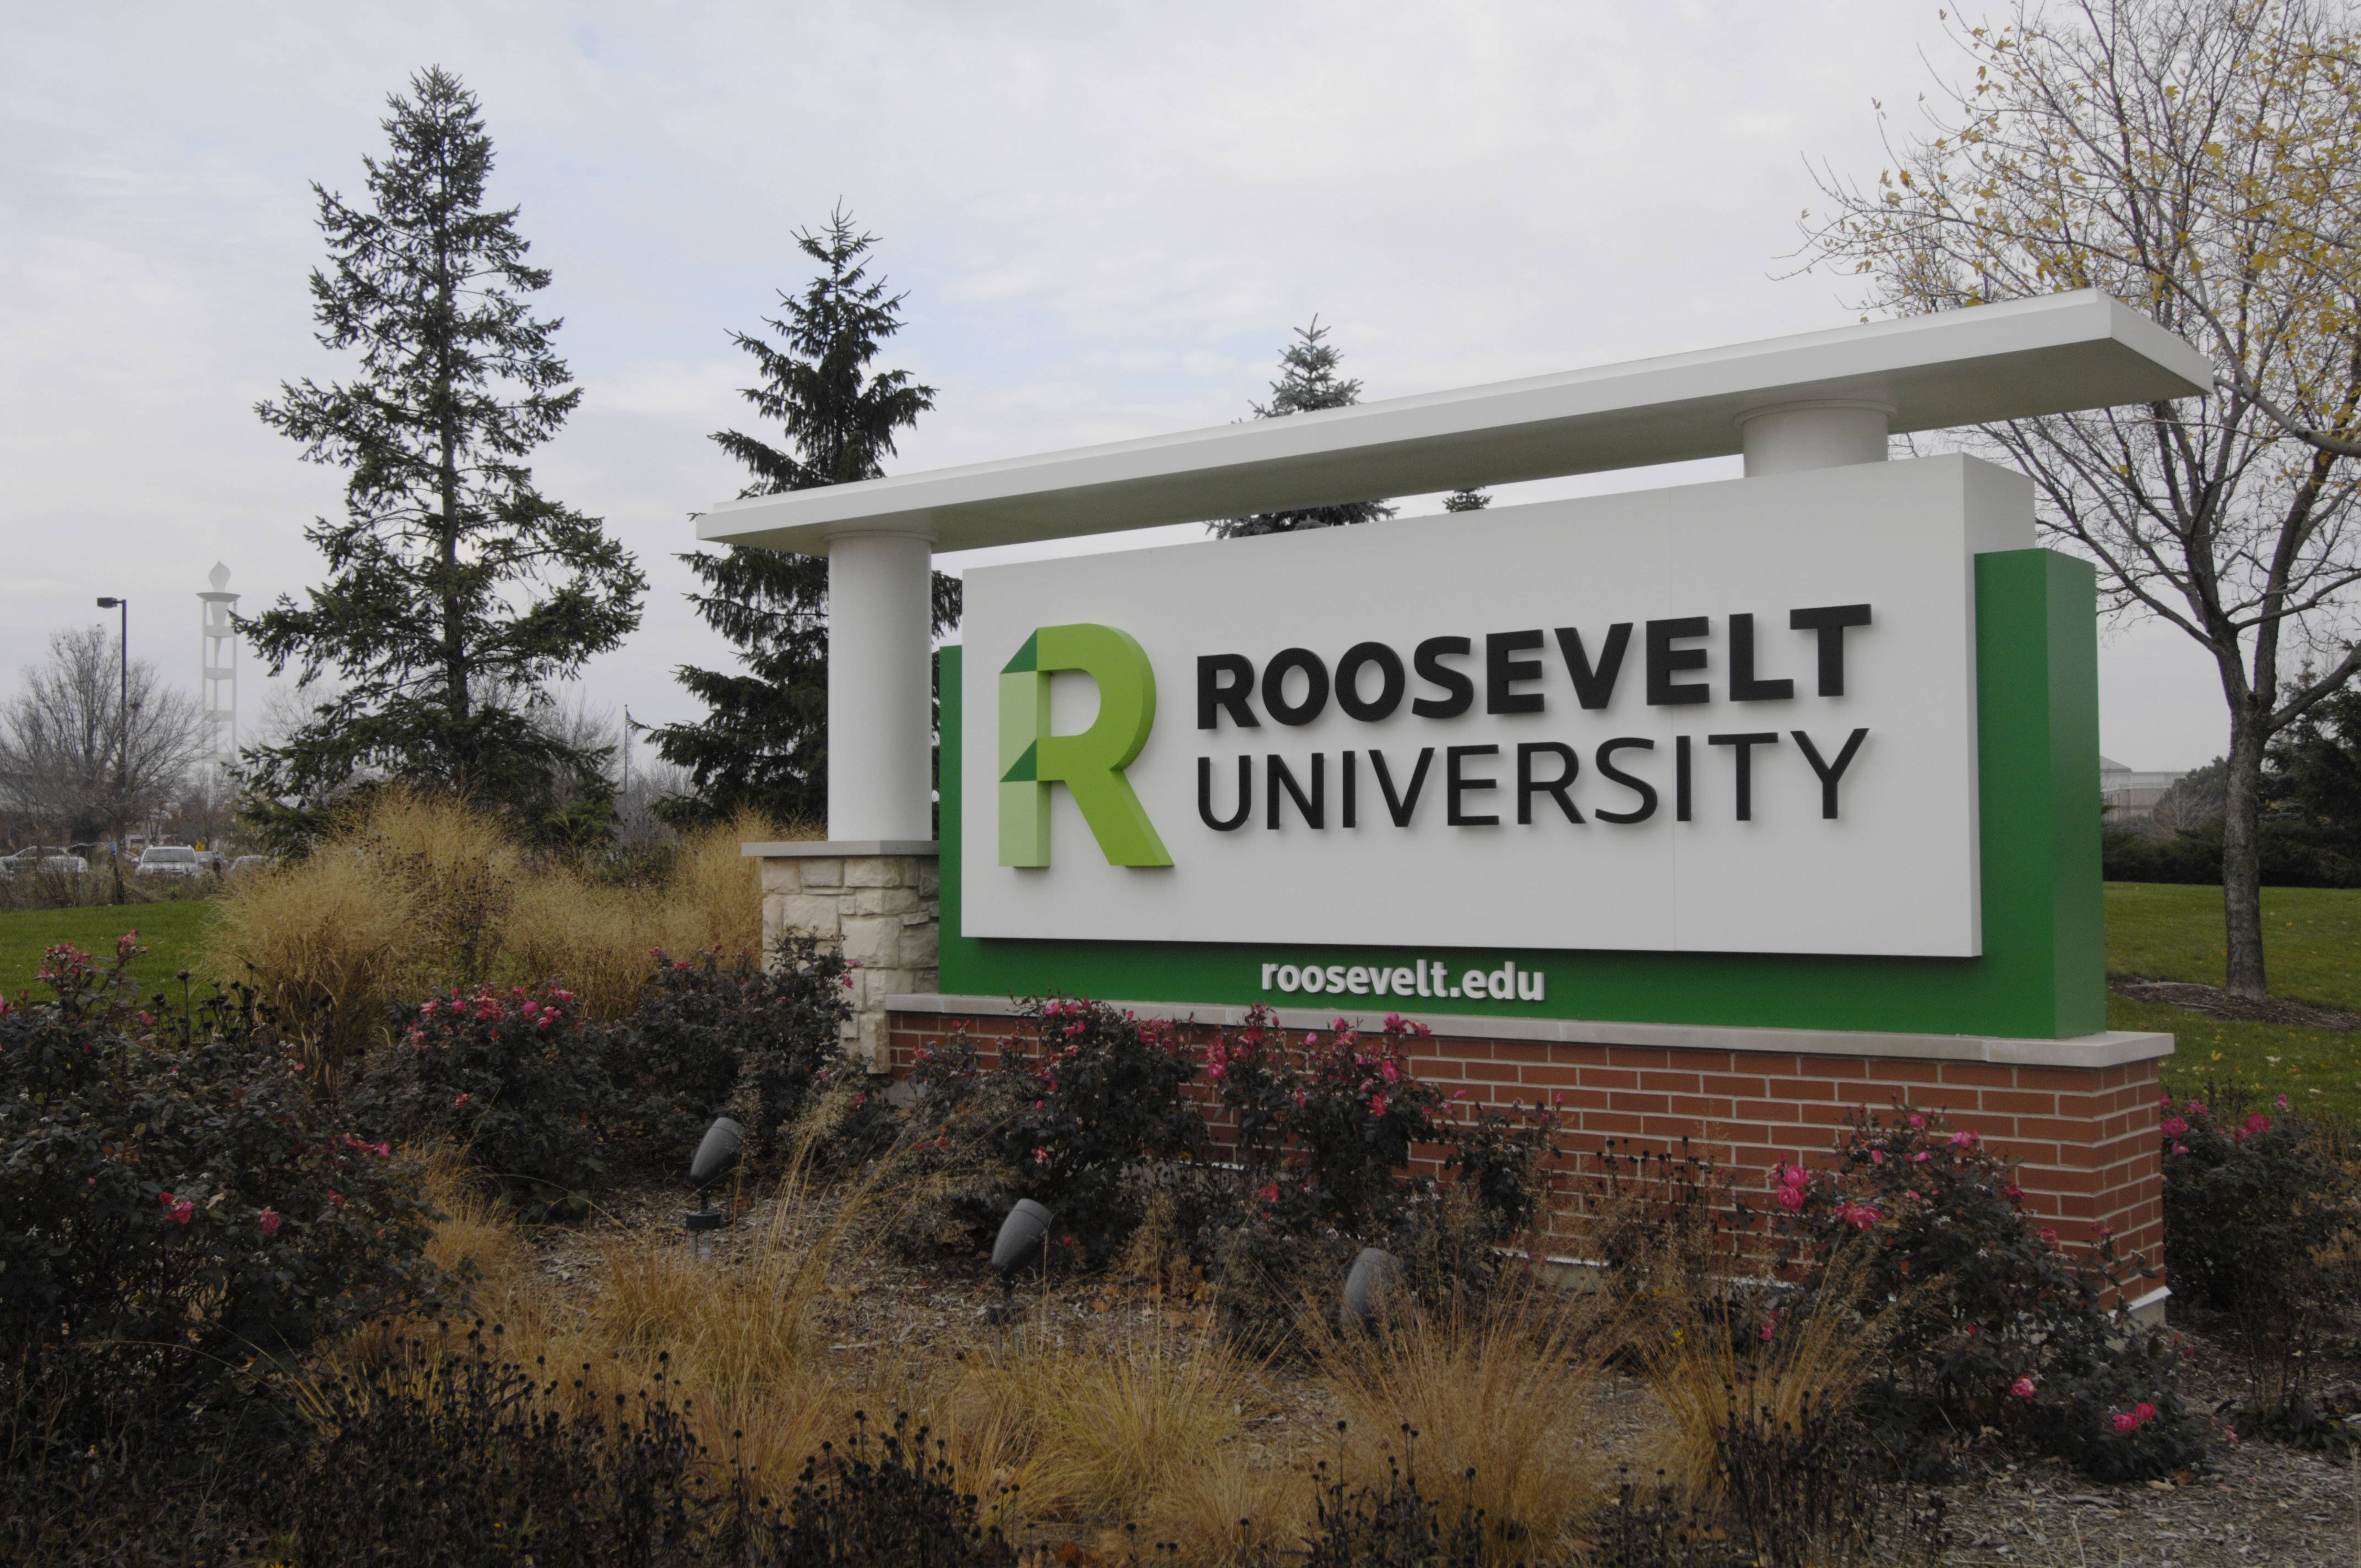 Roosevelt University recently announced that the changing market in higher education was prompting it to move most of the programs at its Schaumburg campus to Chicago. The Schaumburg campus will remain home to the university's successful College of Pharmacy.